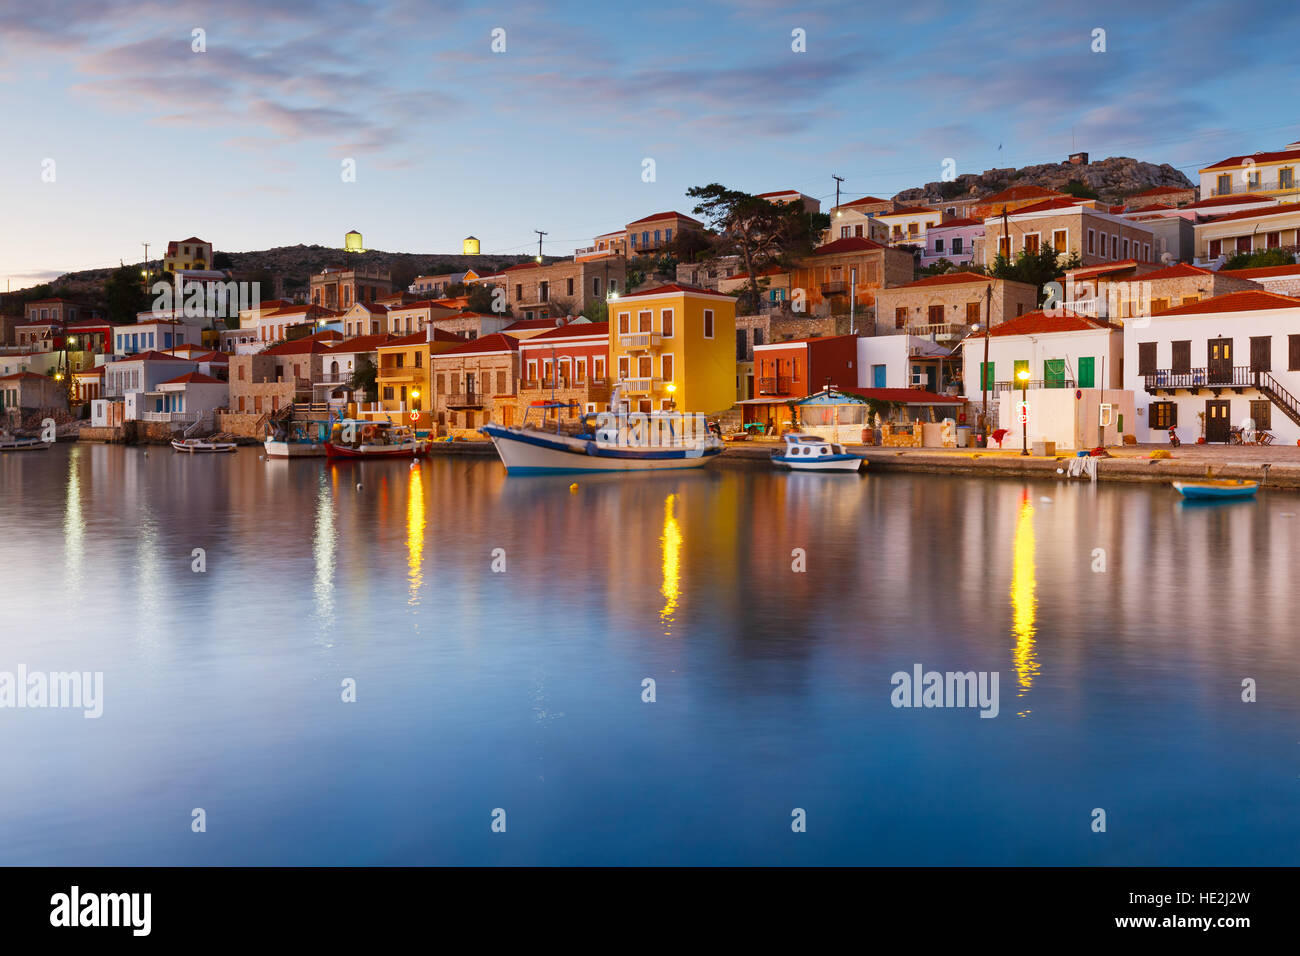 View of Halki village and its harbor, Greece. - Stock Image